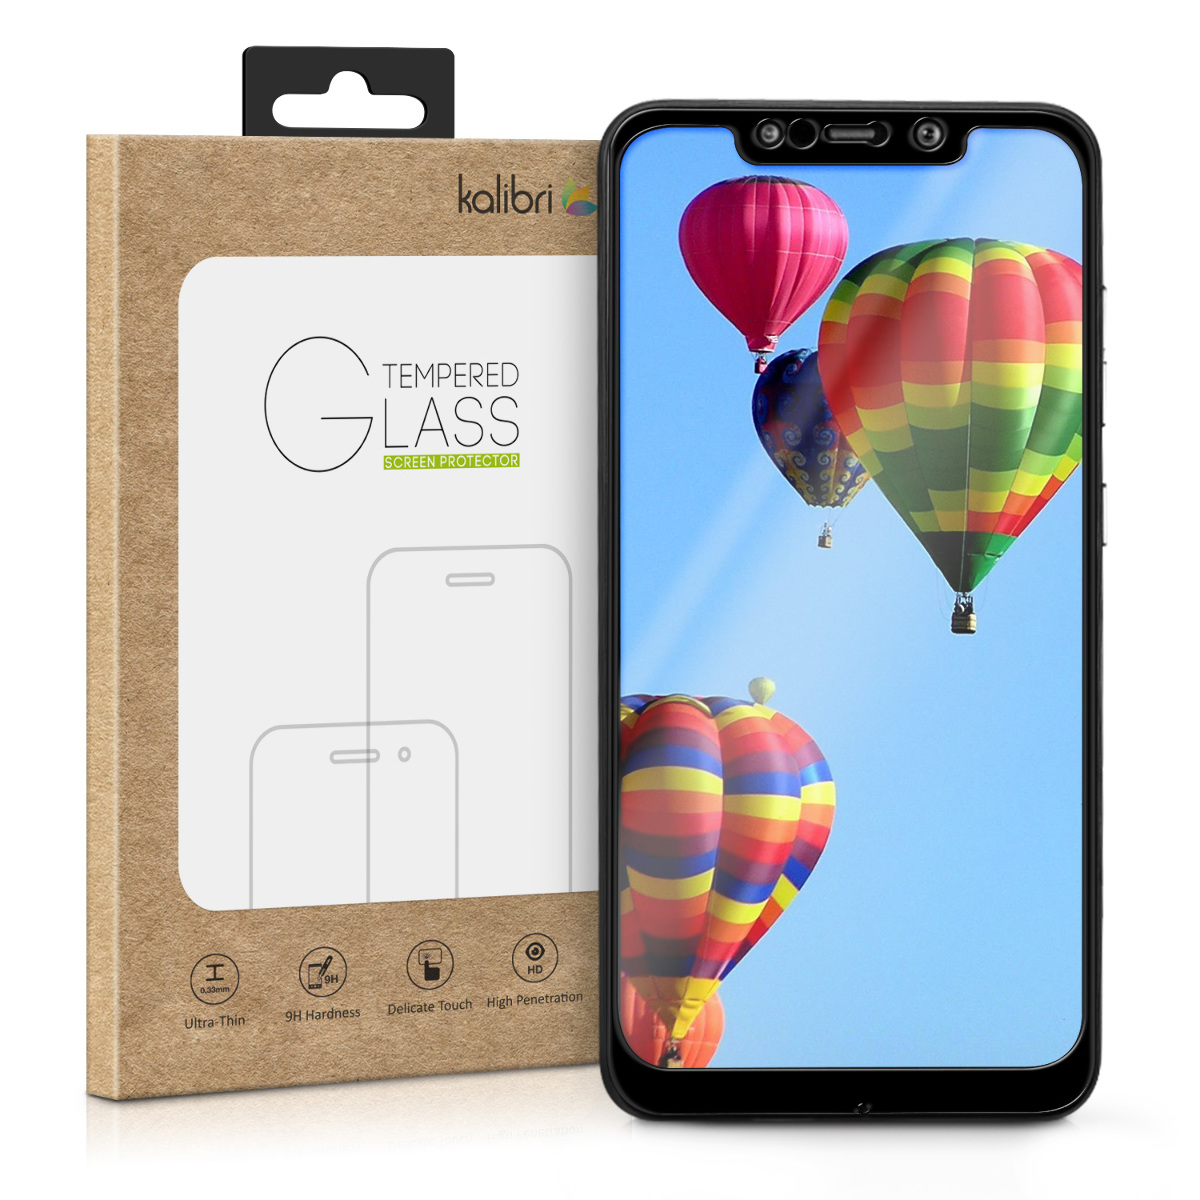 Kalibri Tempered Glass - Fullface Αντιχαρακτικό Γυαλί Οθόνης Xiaomi Pocophone F1 - Black (46369.01)